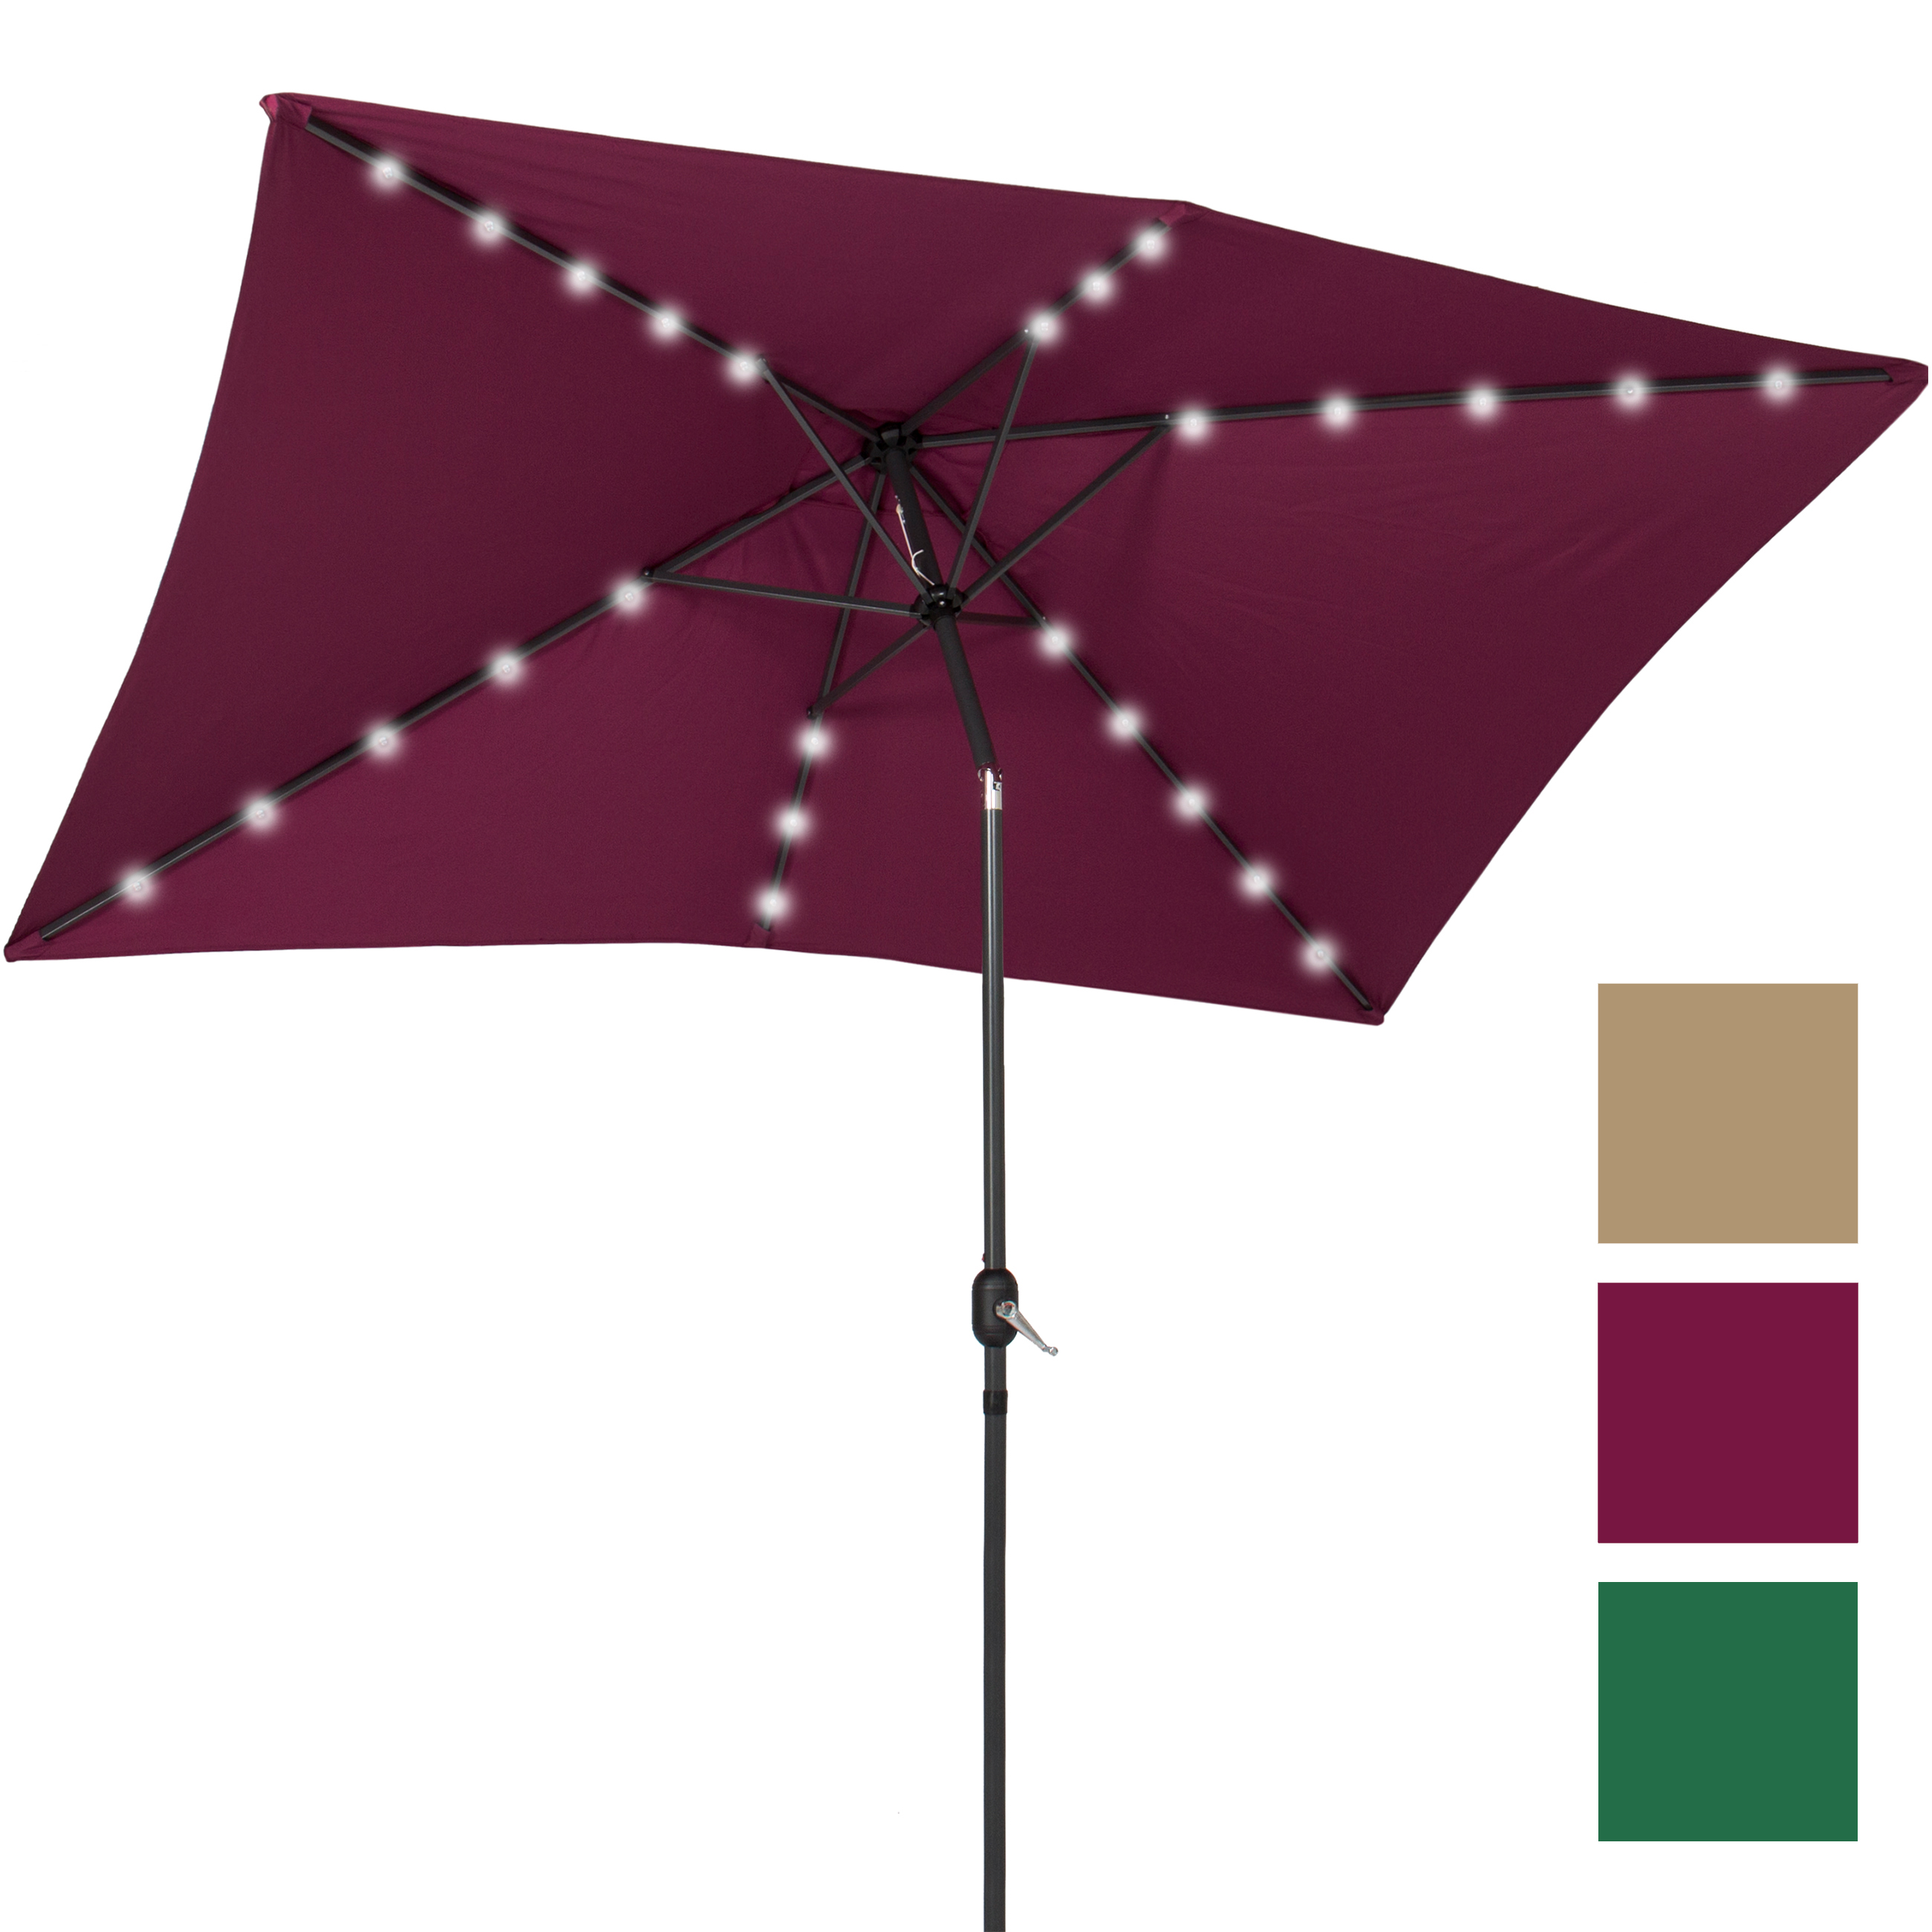 BCP 10' x 6.5' LED Solar Patio Umbrella With Tilt Adjustment Multicolor by Patio Umbrellas